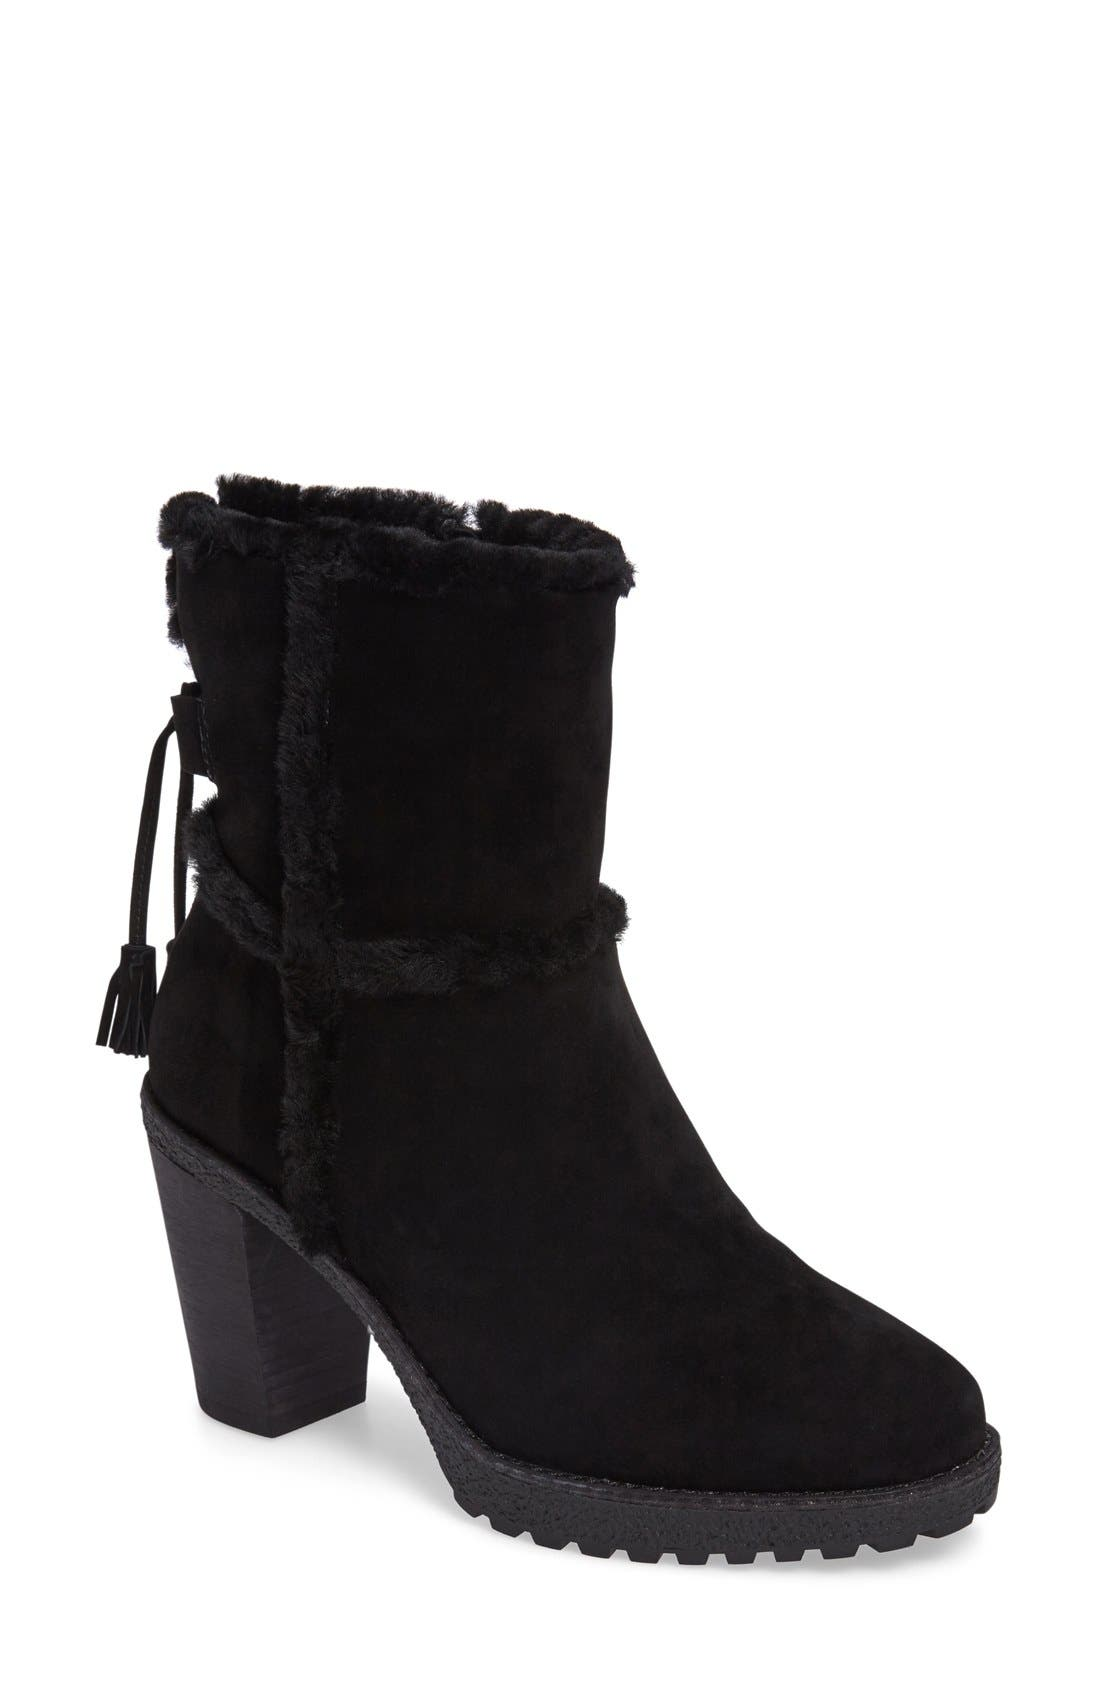 Jen Genuine Shearling Lined Water Resistant Boot,                             Main thumbnail 1, color,                             001